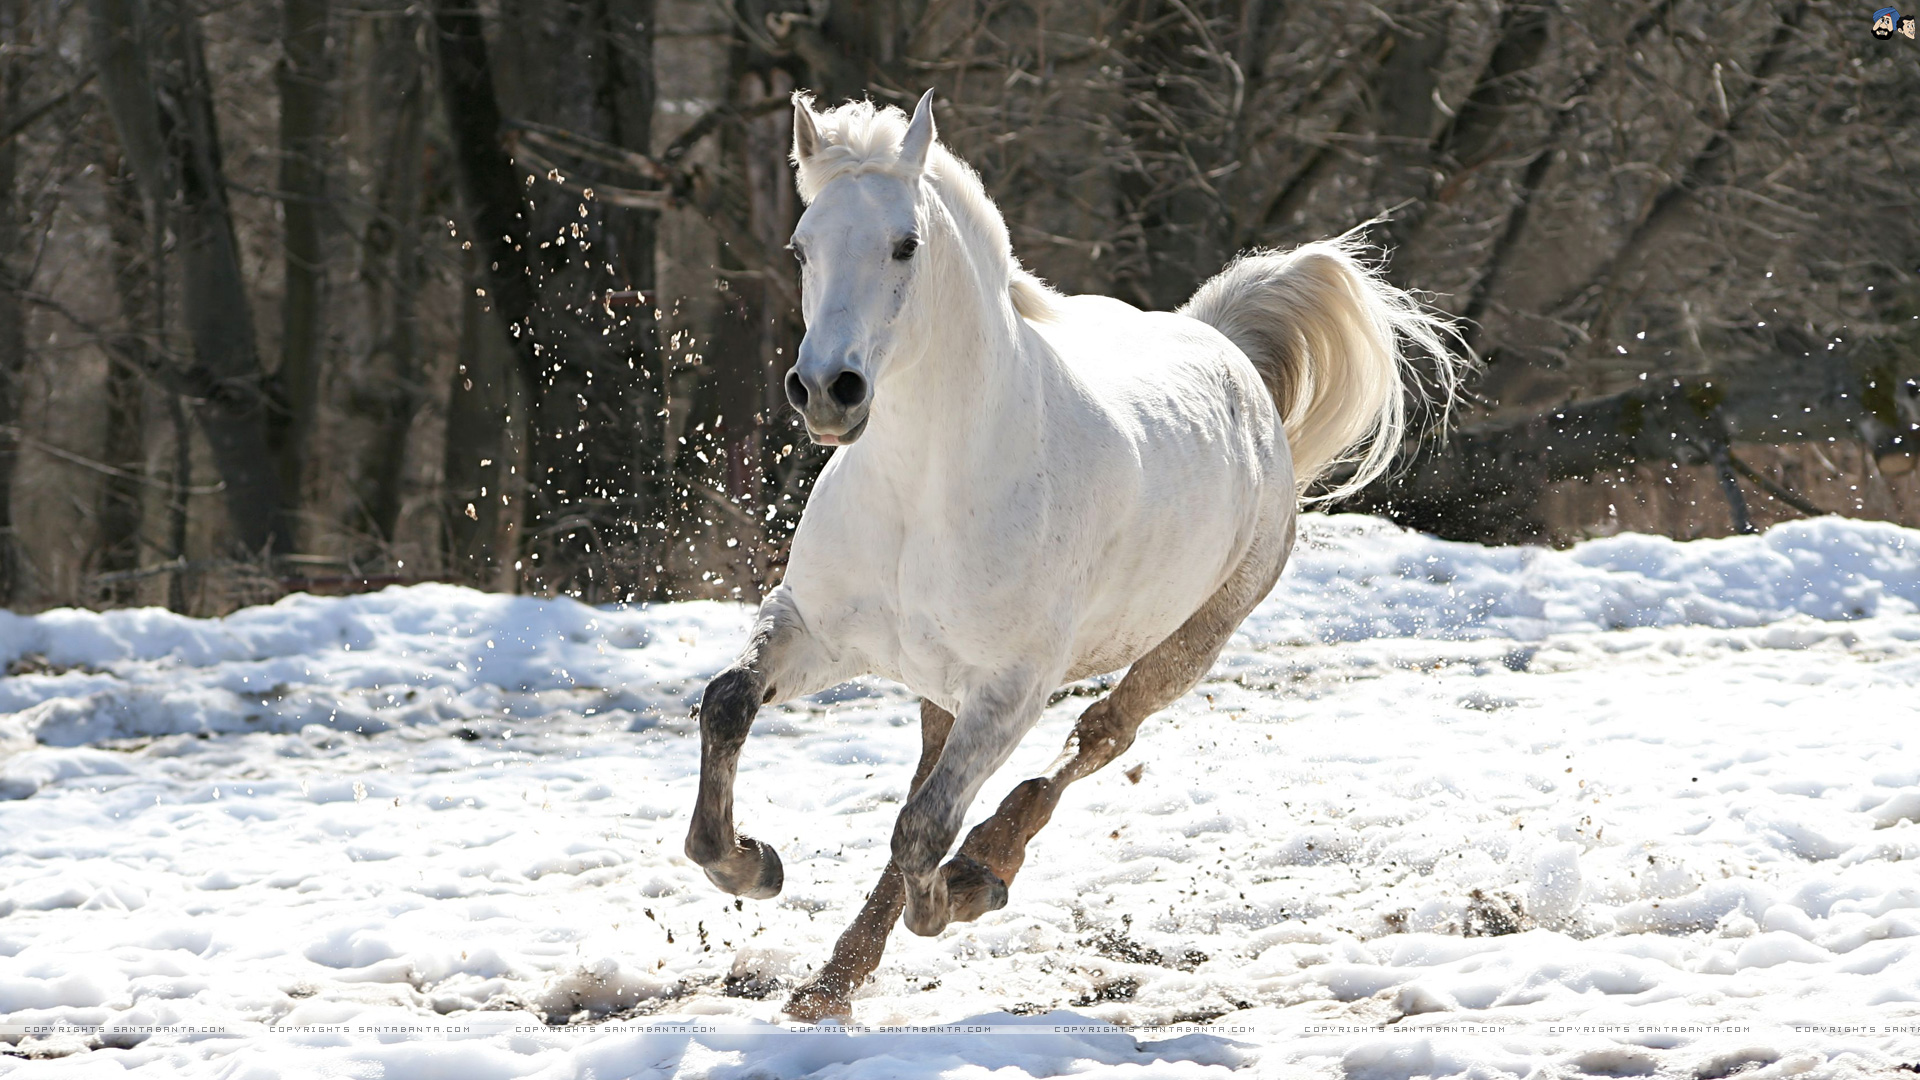 Horse animal facts and image wallpapers download.